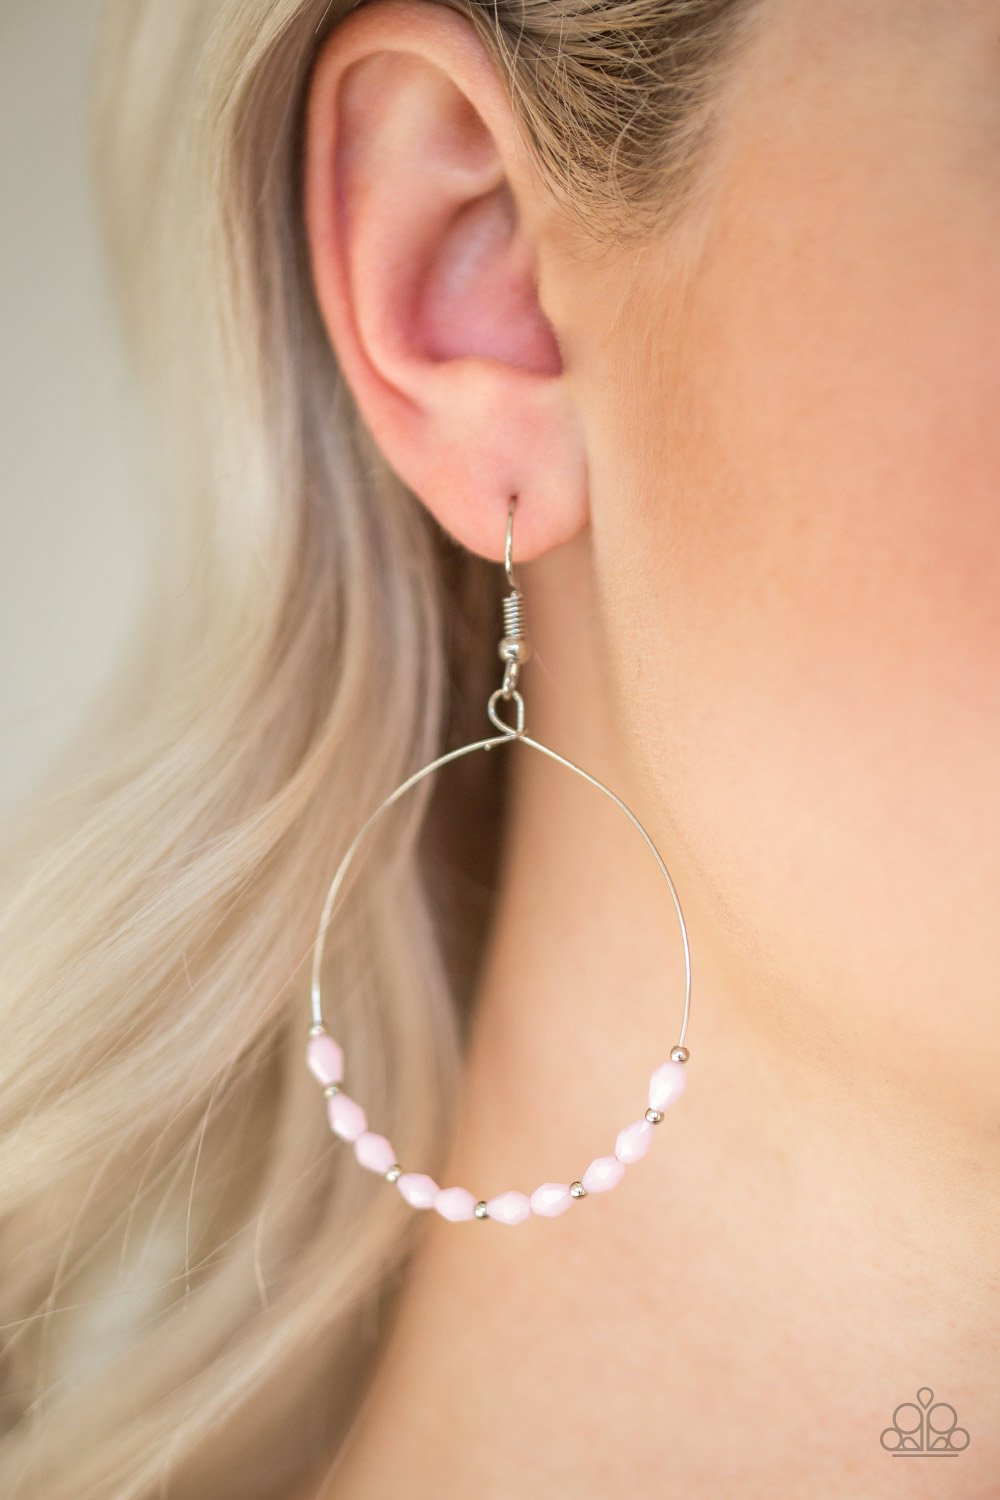 Prize Winning Sparkle - pink - Paparazzi earrings